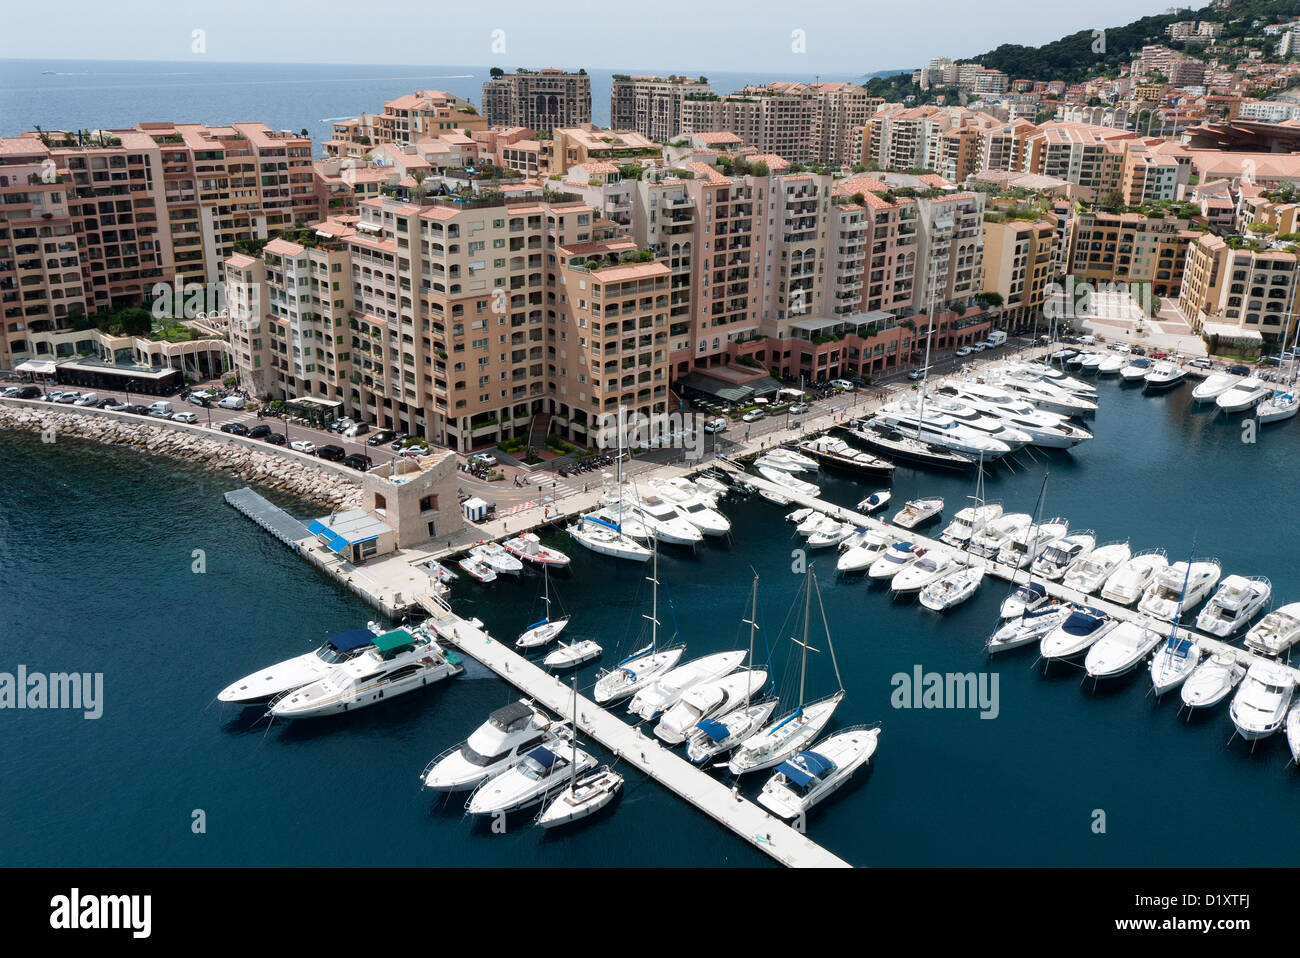 Fontvieille Harbour in the principality of Monaco on the Côte d'Azur - Stock Image